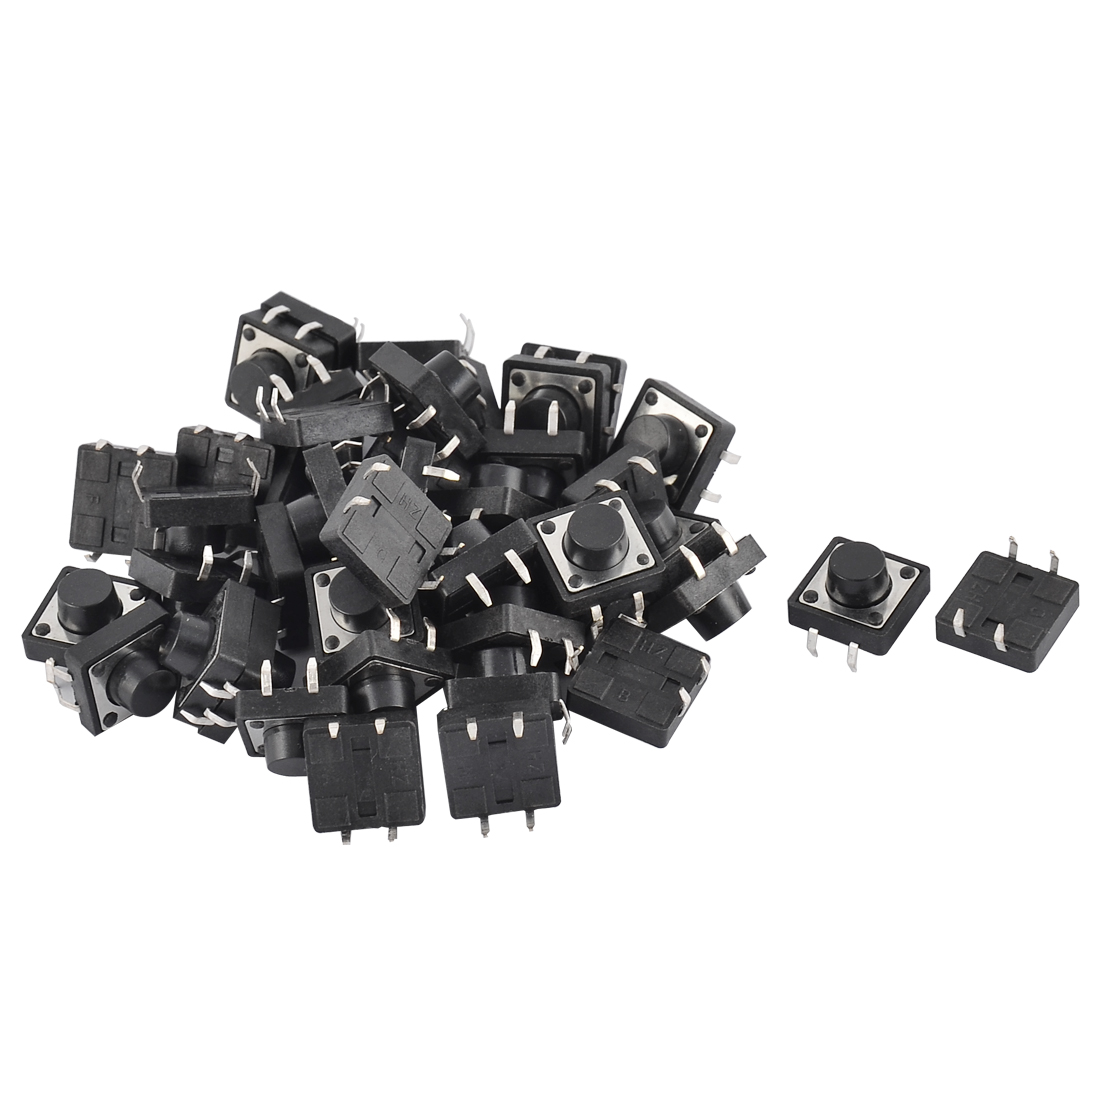 Electronic Component Panel PCB Momentary Tactile Tact Push Button Switch 12 x 12 x 7mm 44pcs